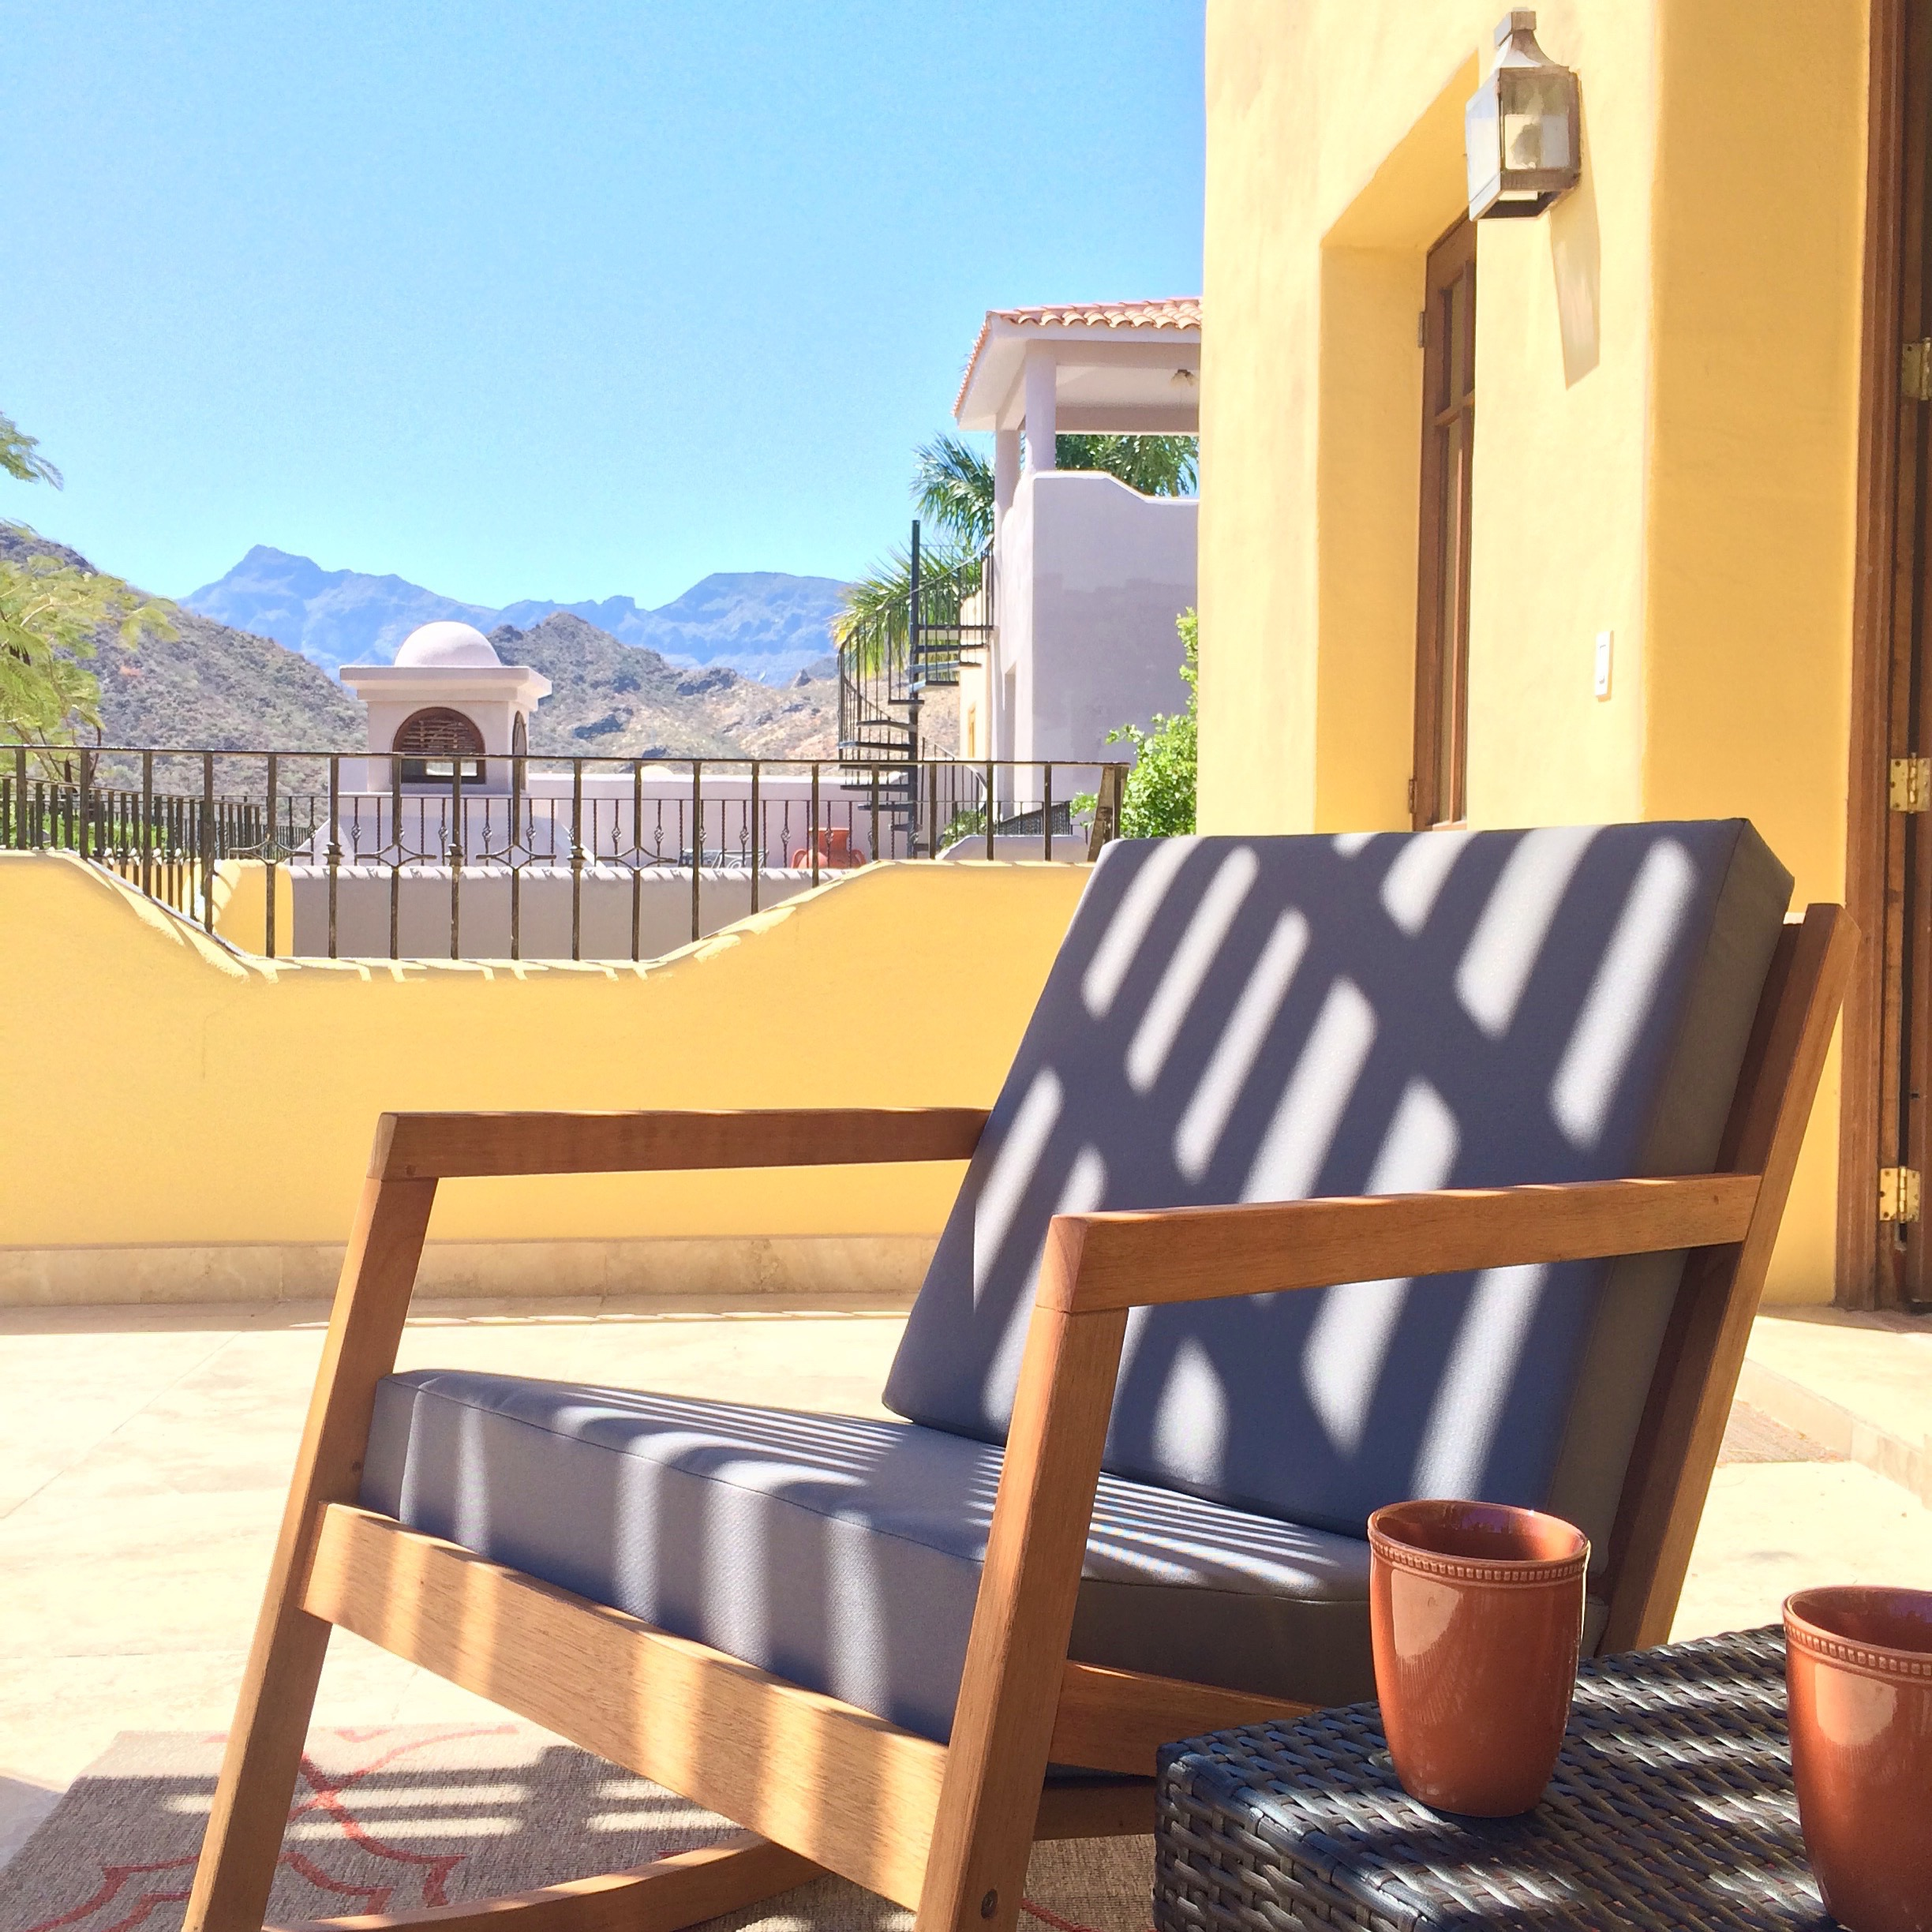 FN314 CASA CARMEN: 5 BED, 2 BATH